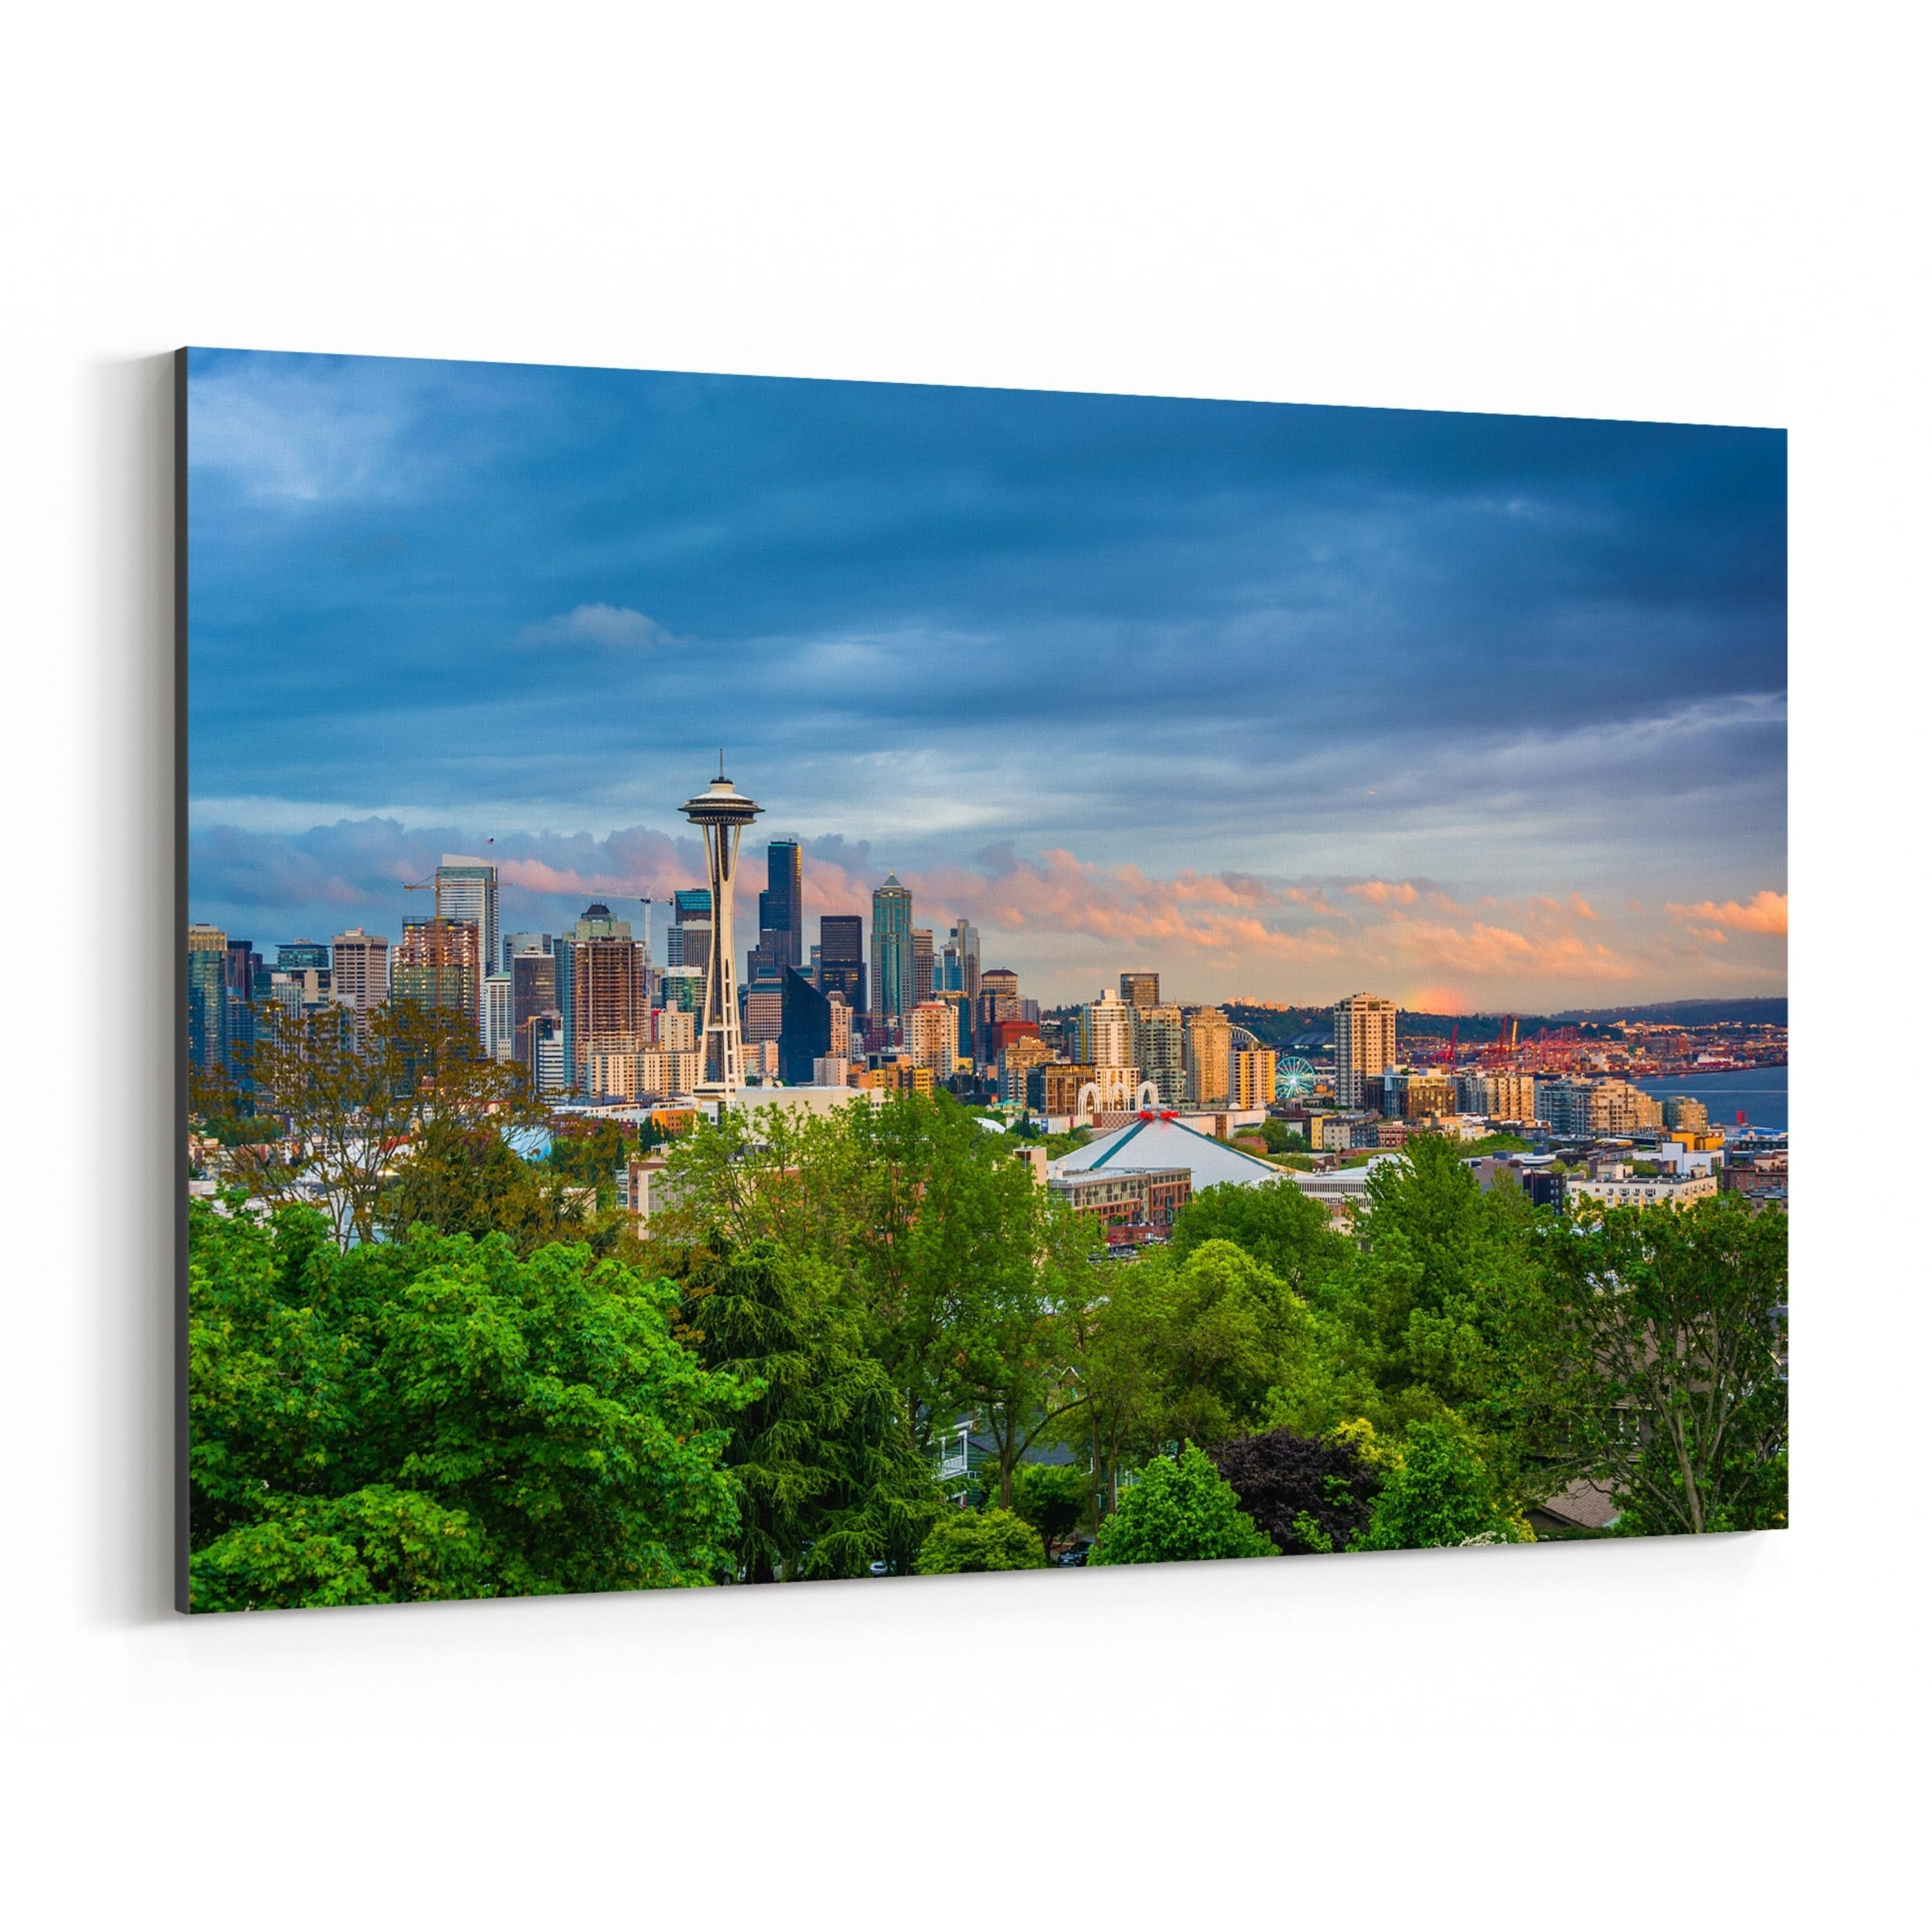 Wall Art Canvas Picture Print Seattle at Night Skyline     1-3.2